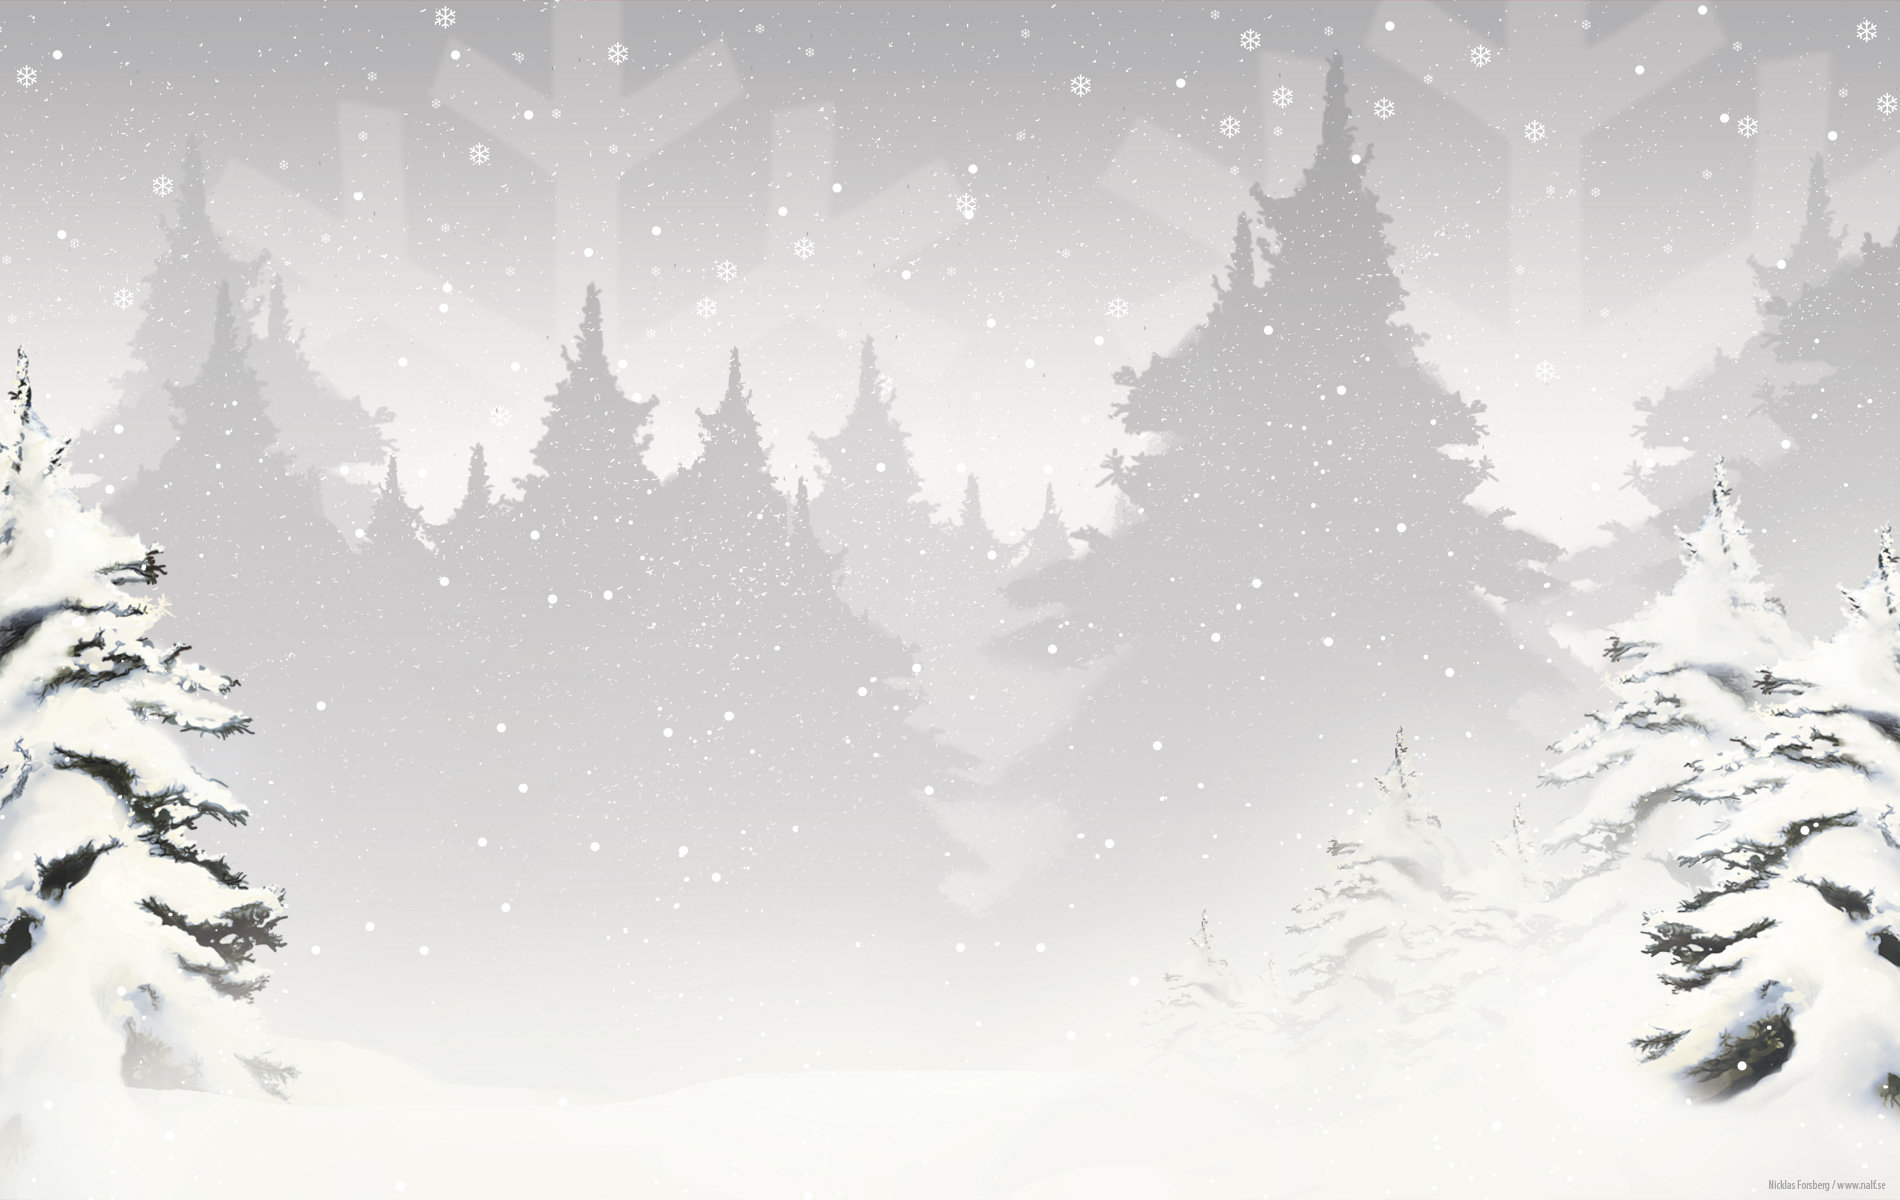 xmas-wallpapers-high-definition-On-wallpaper-hd